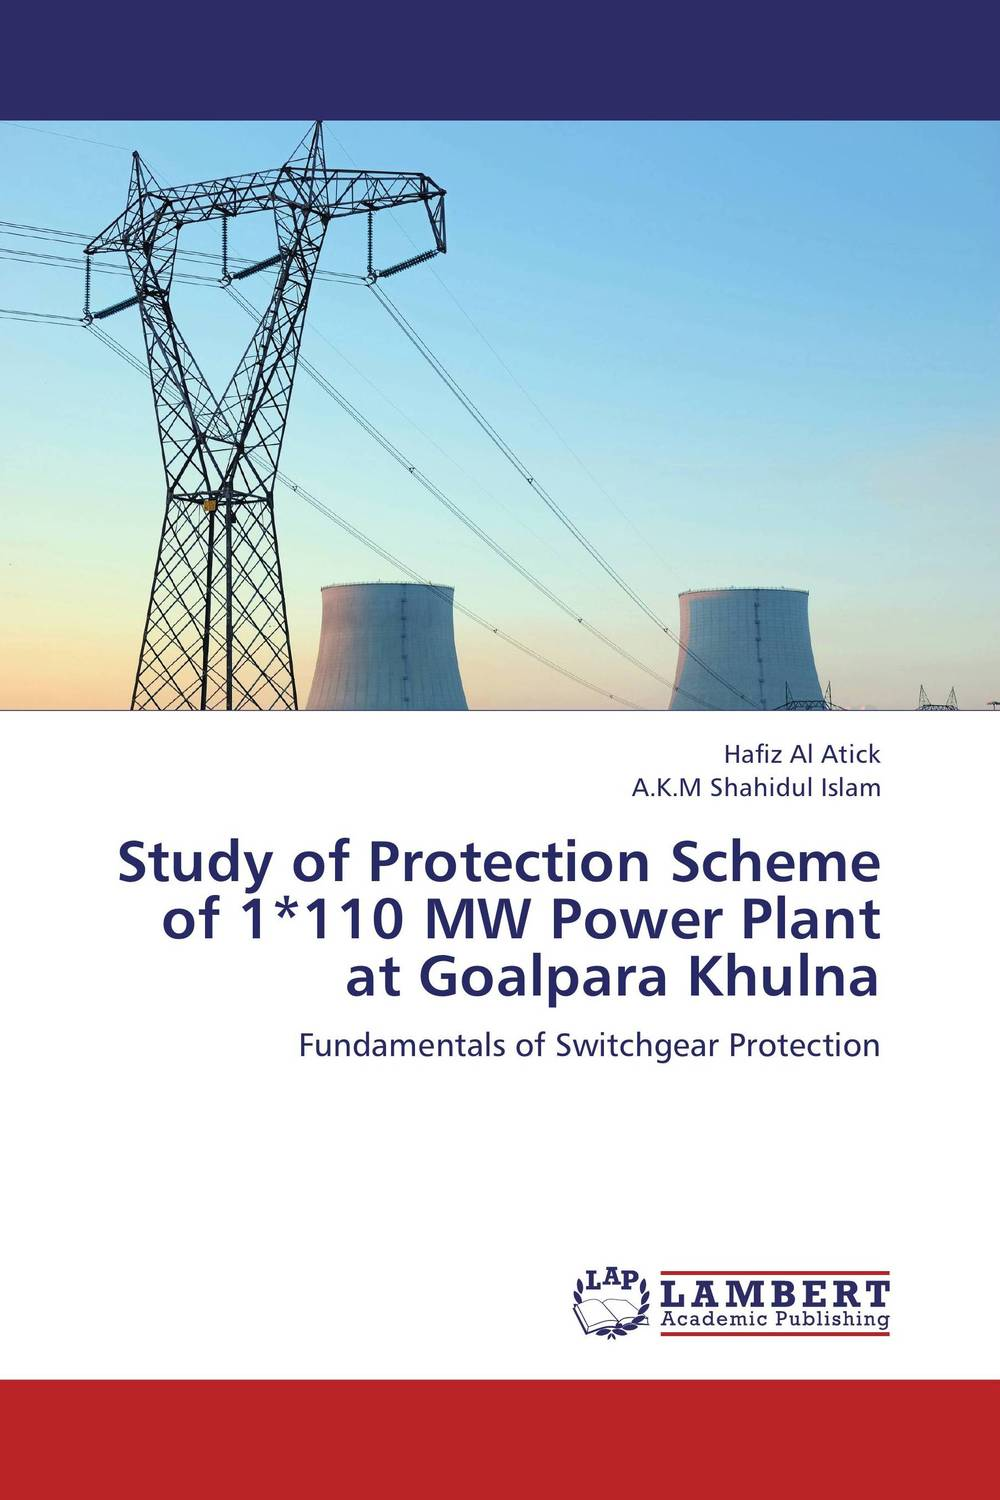 Study of Protection Scheme of 1*110 MW Power Plant at Goalpara Khulna садовая химия zi jane plant protection station 38 200g 80%